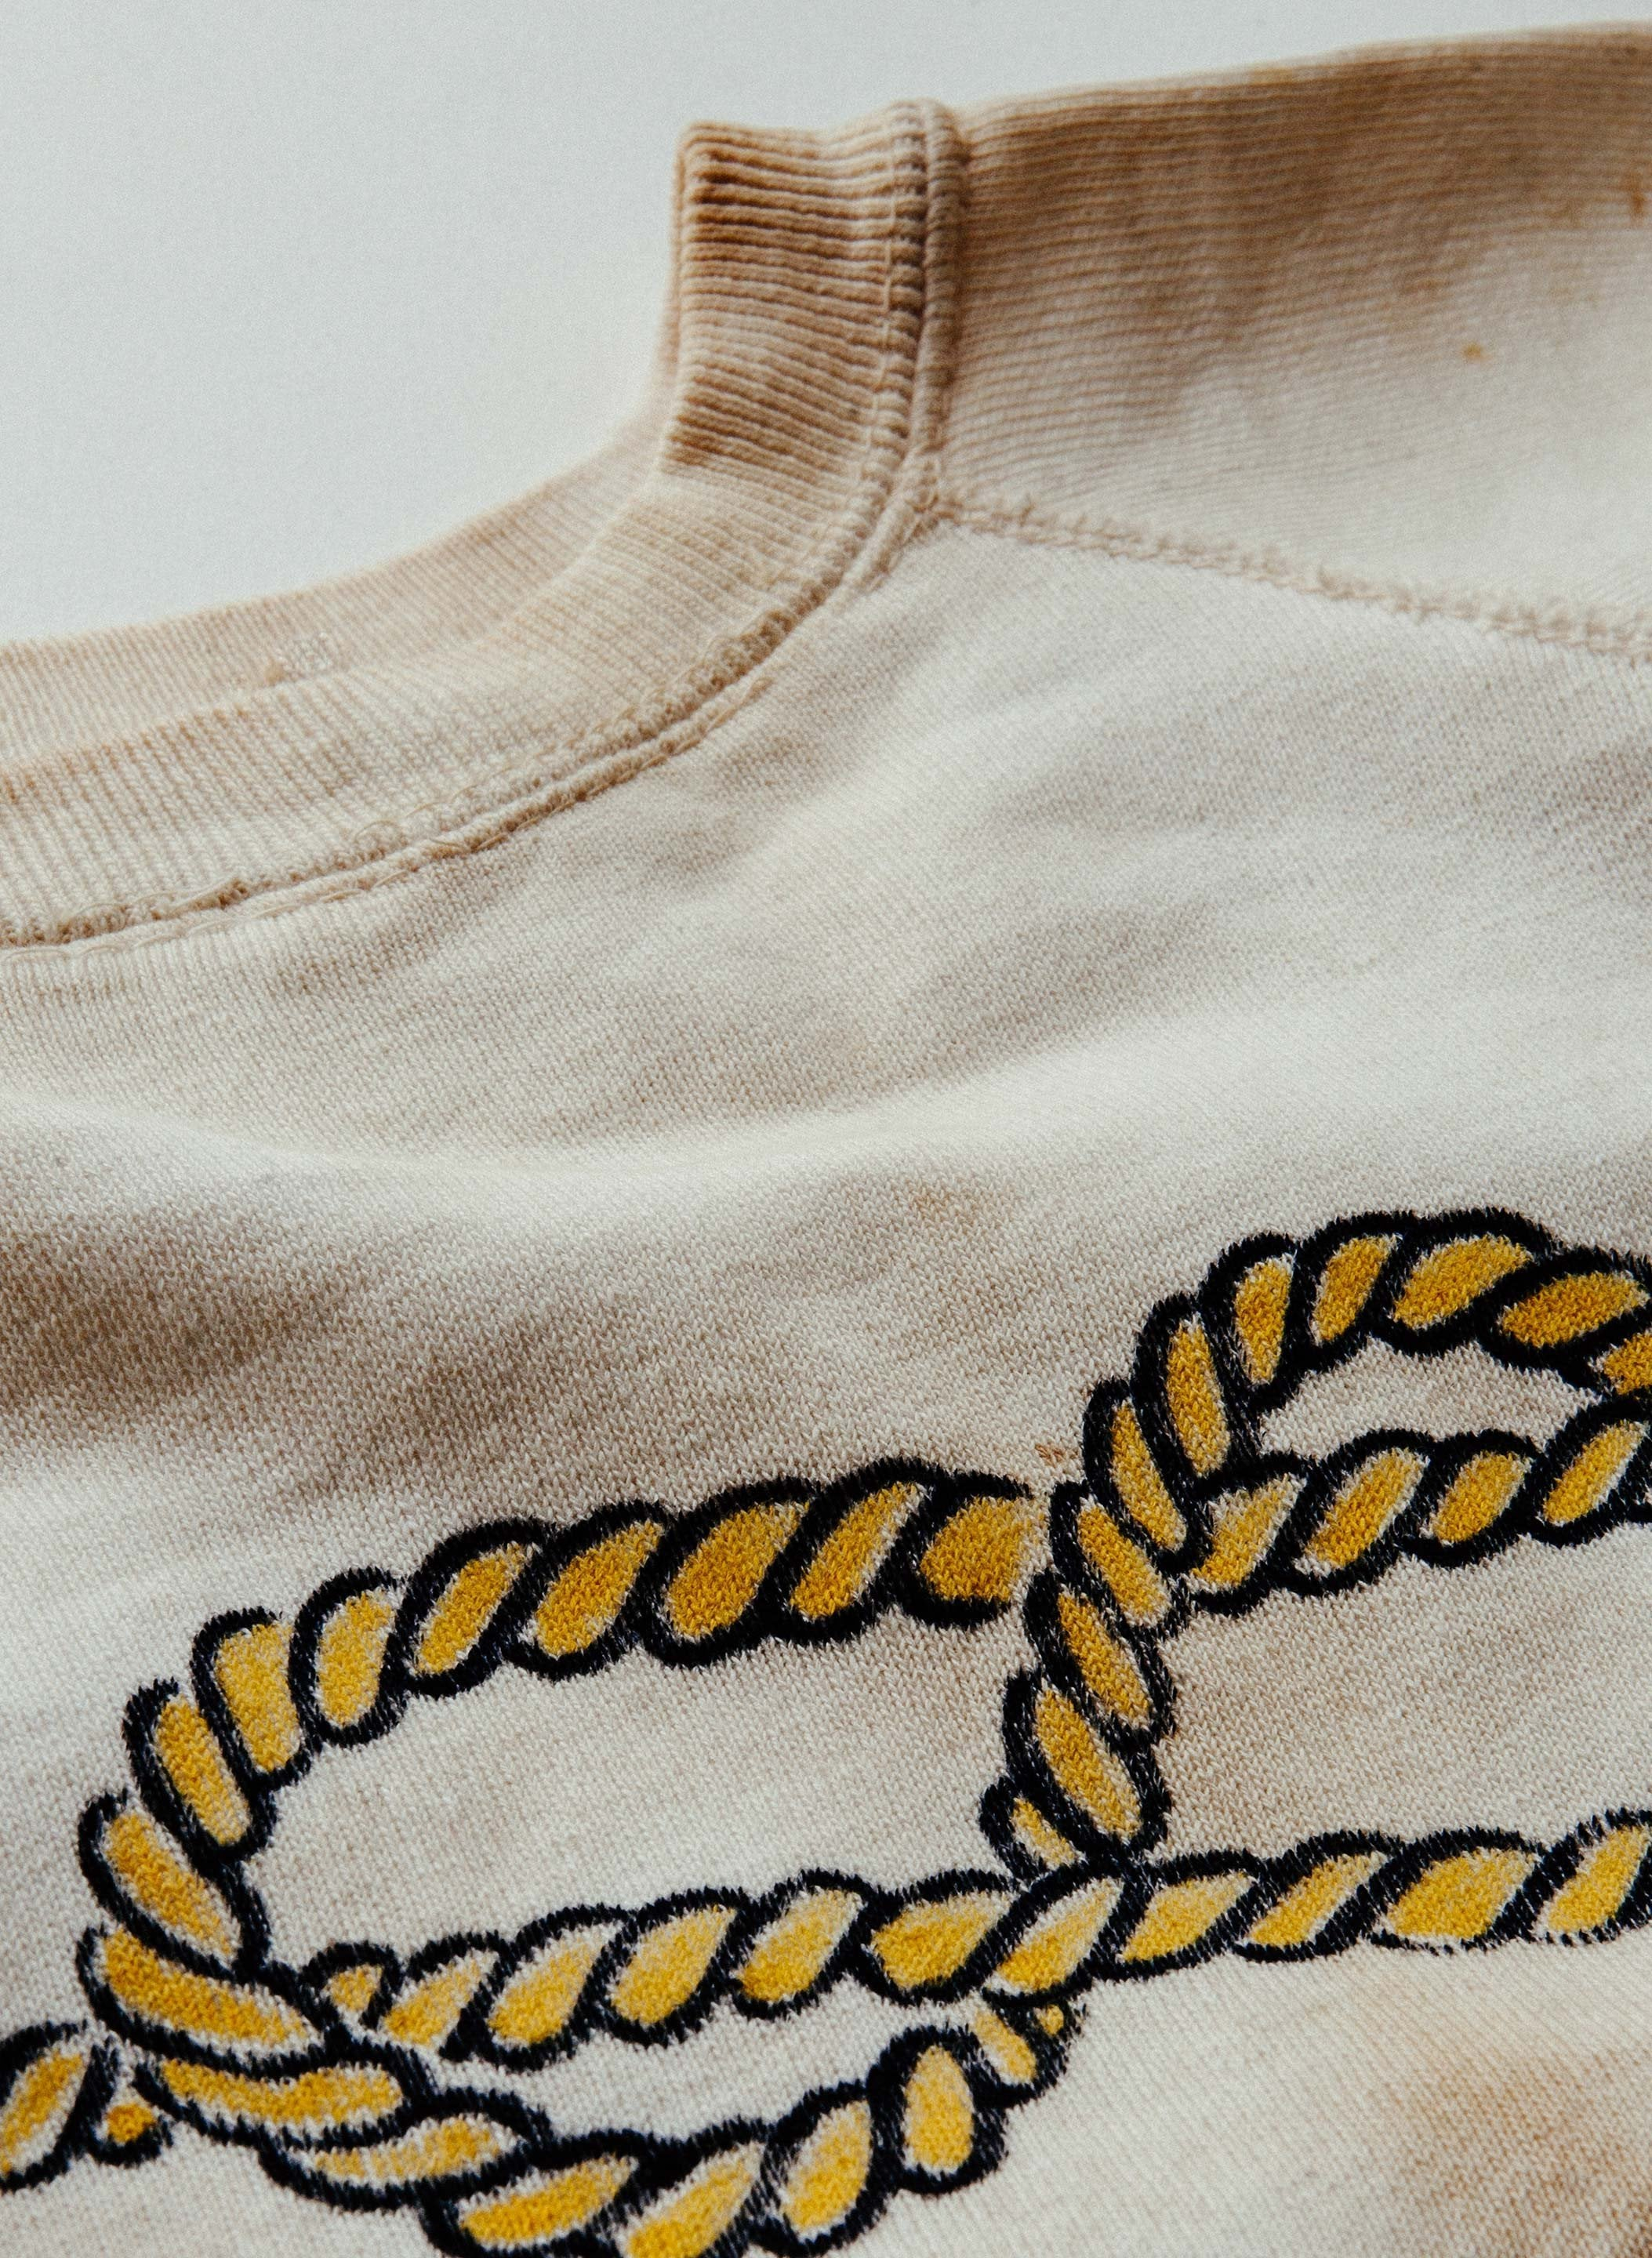 imogene + willie - vintage white knit sweatshirt